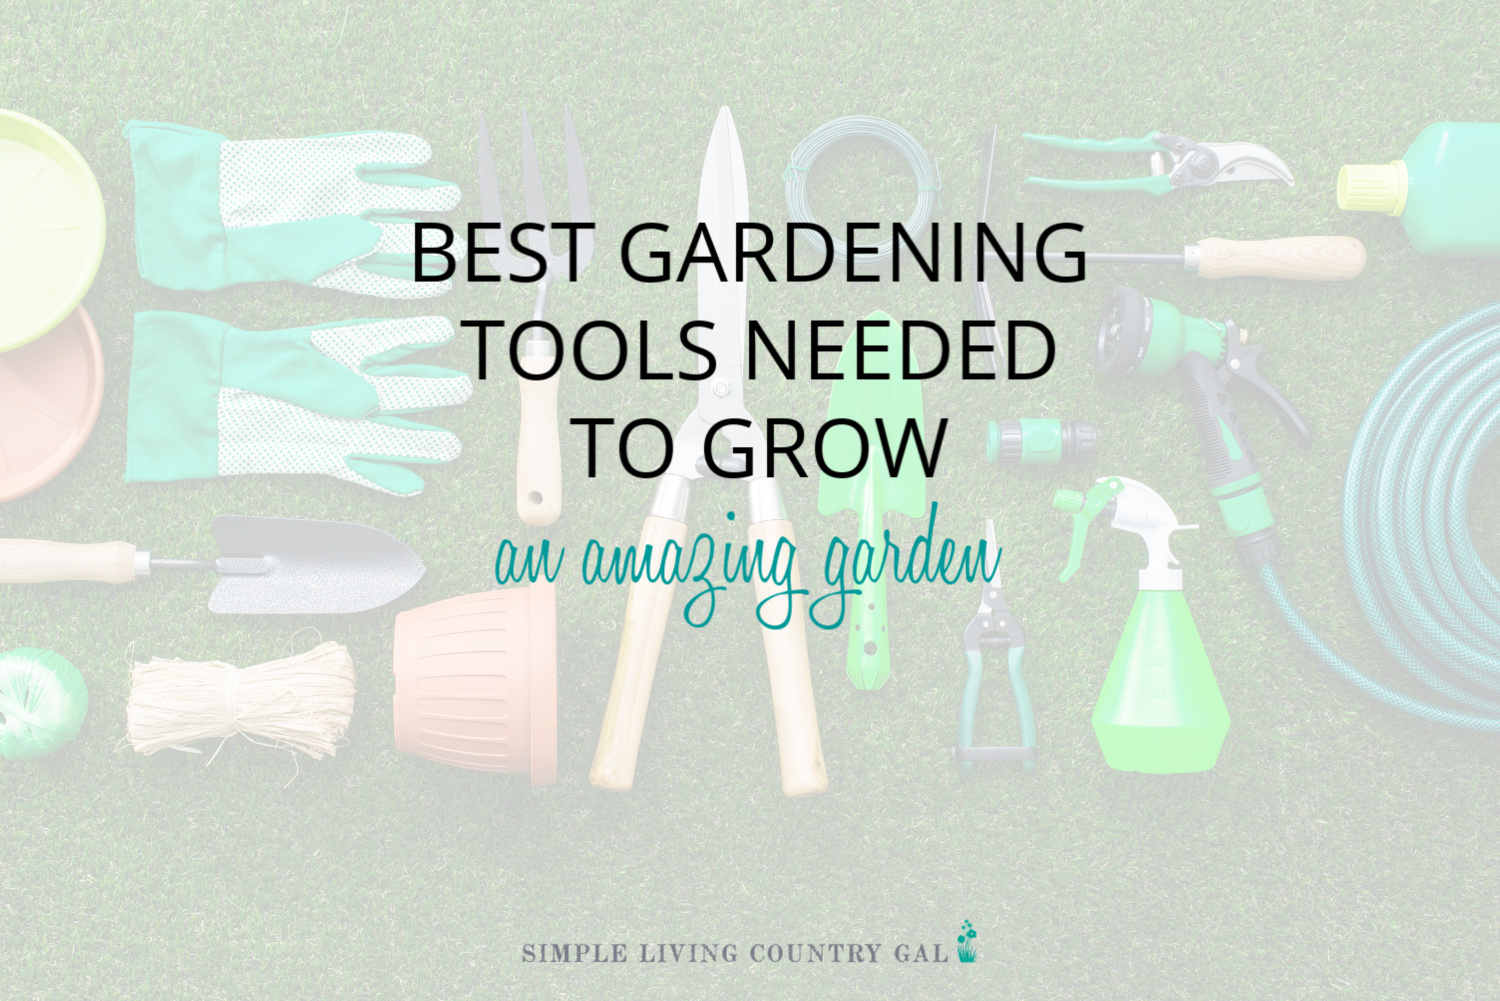 Best Gardening Tools Needed to Grow and Amazing Vegetable Garden